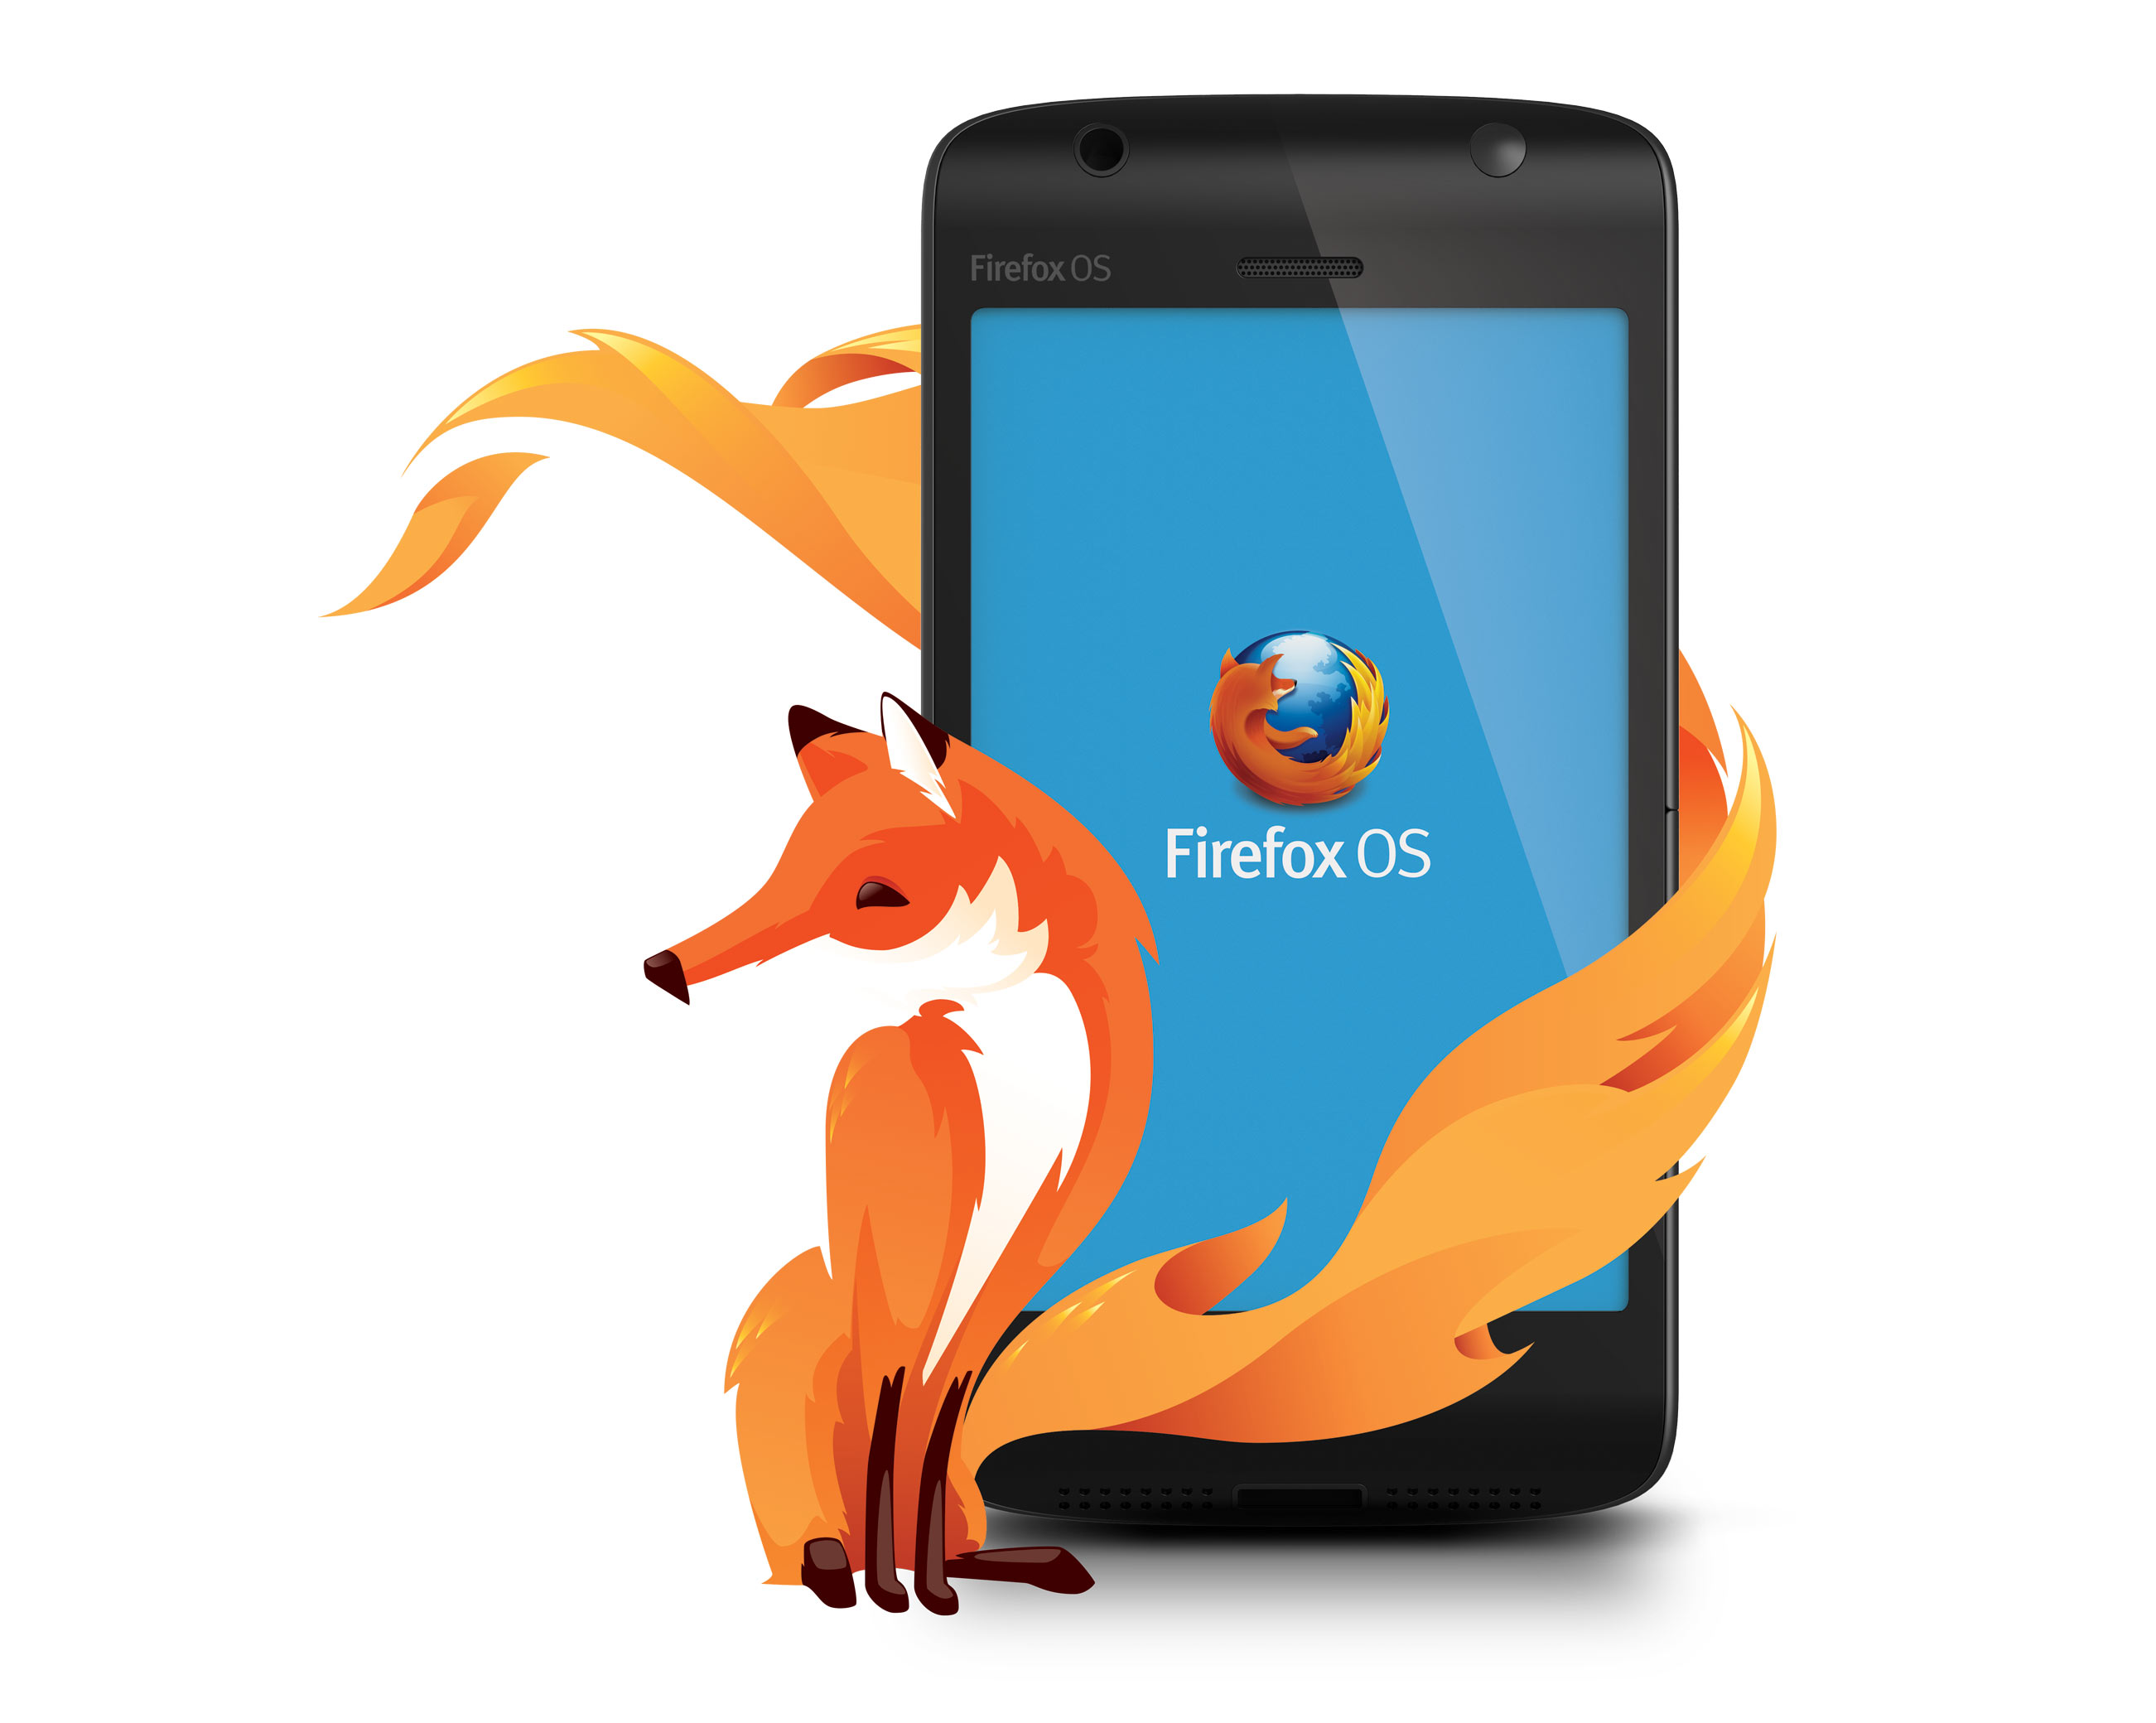 Mozilla's Firefox OS competes chiefly against Apple's iOS and Google's Android.